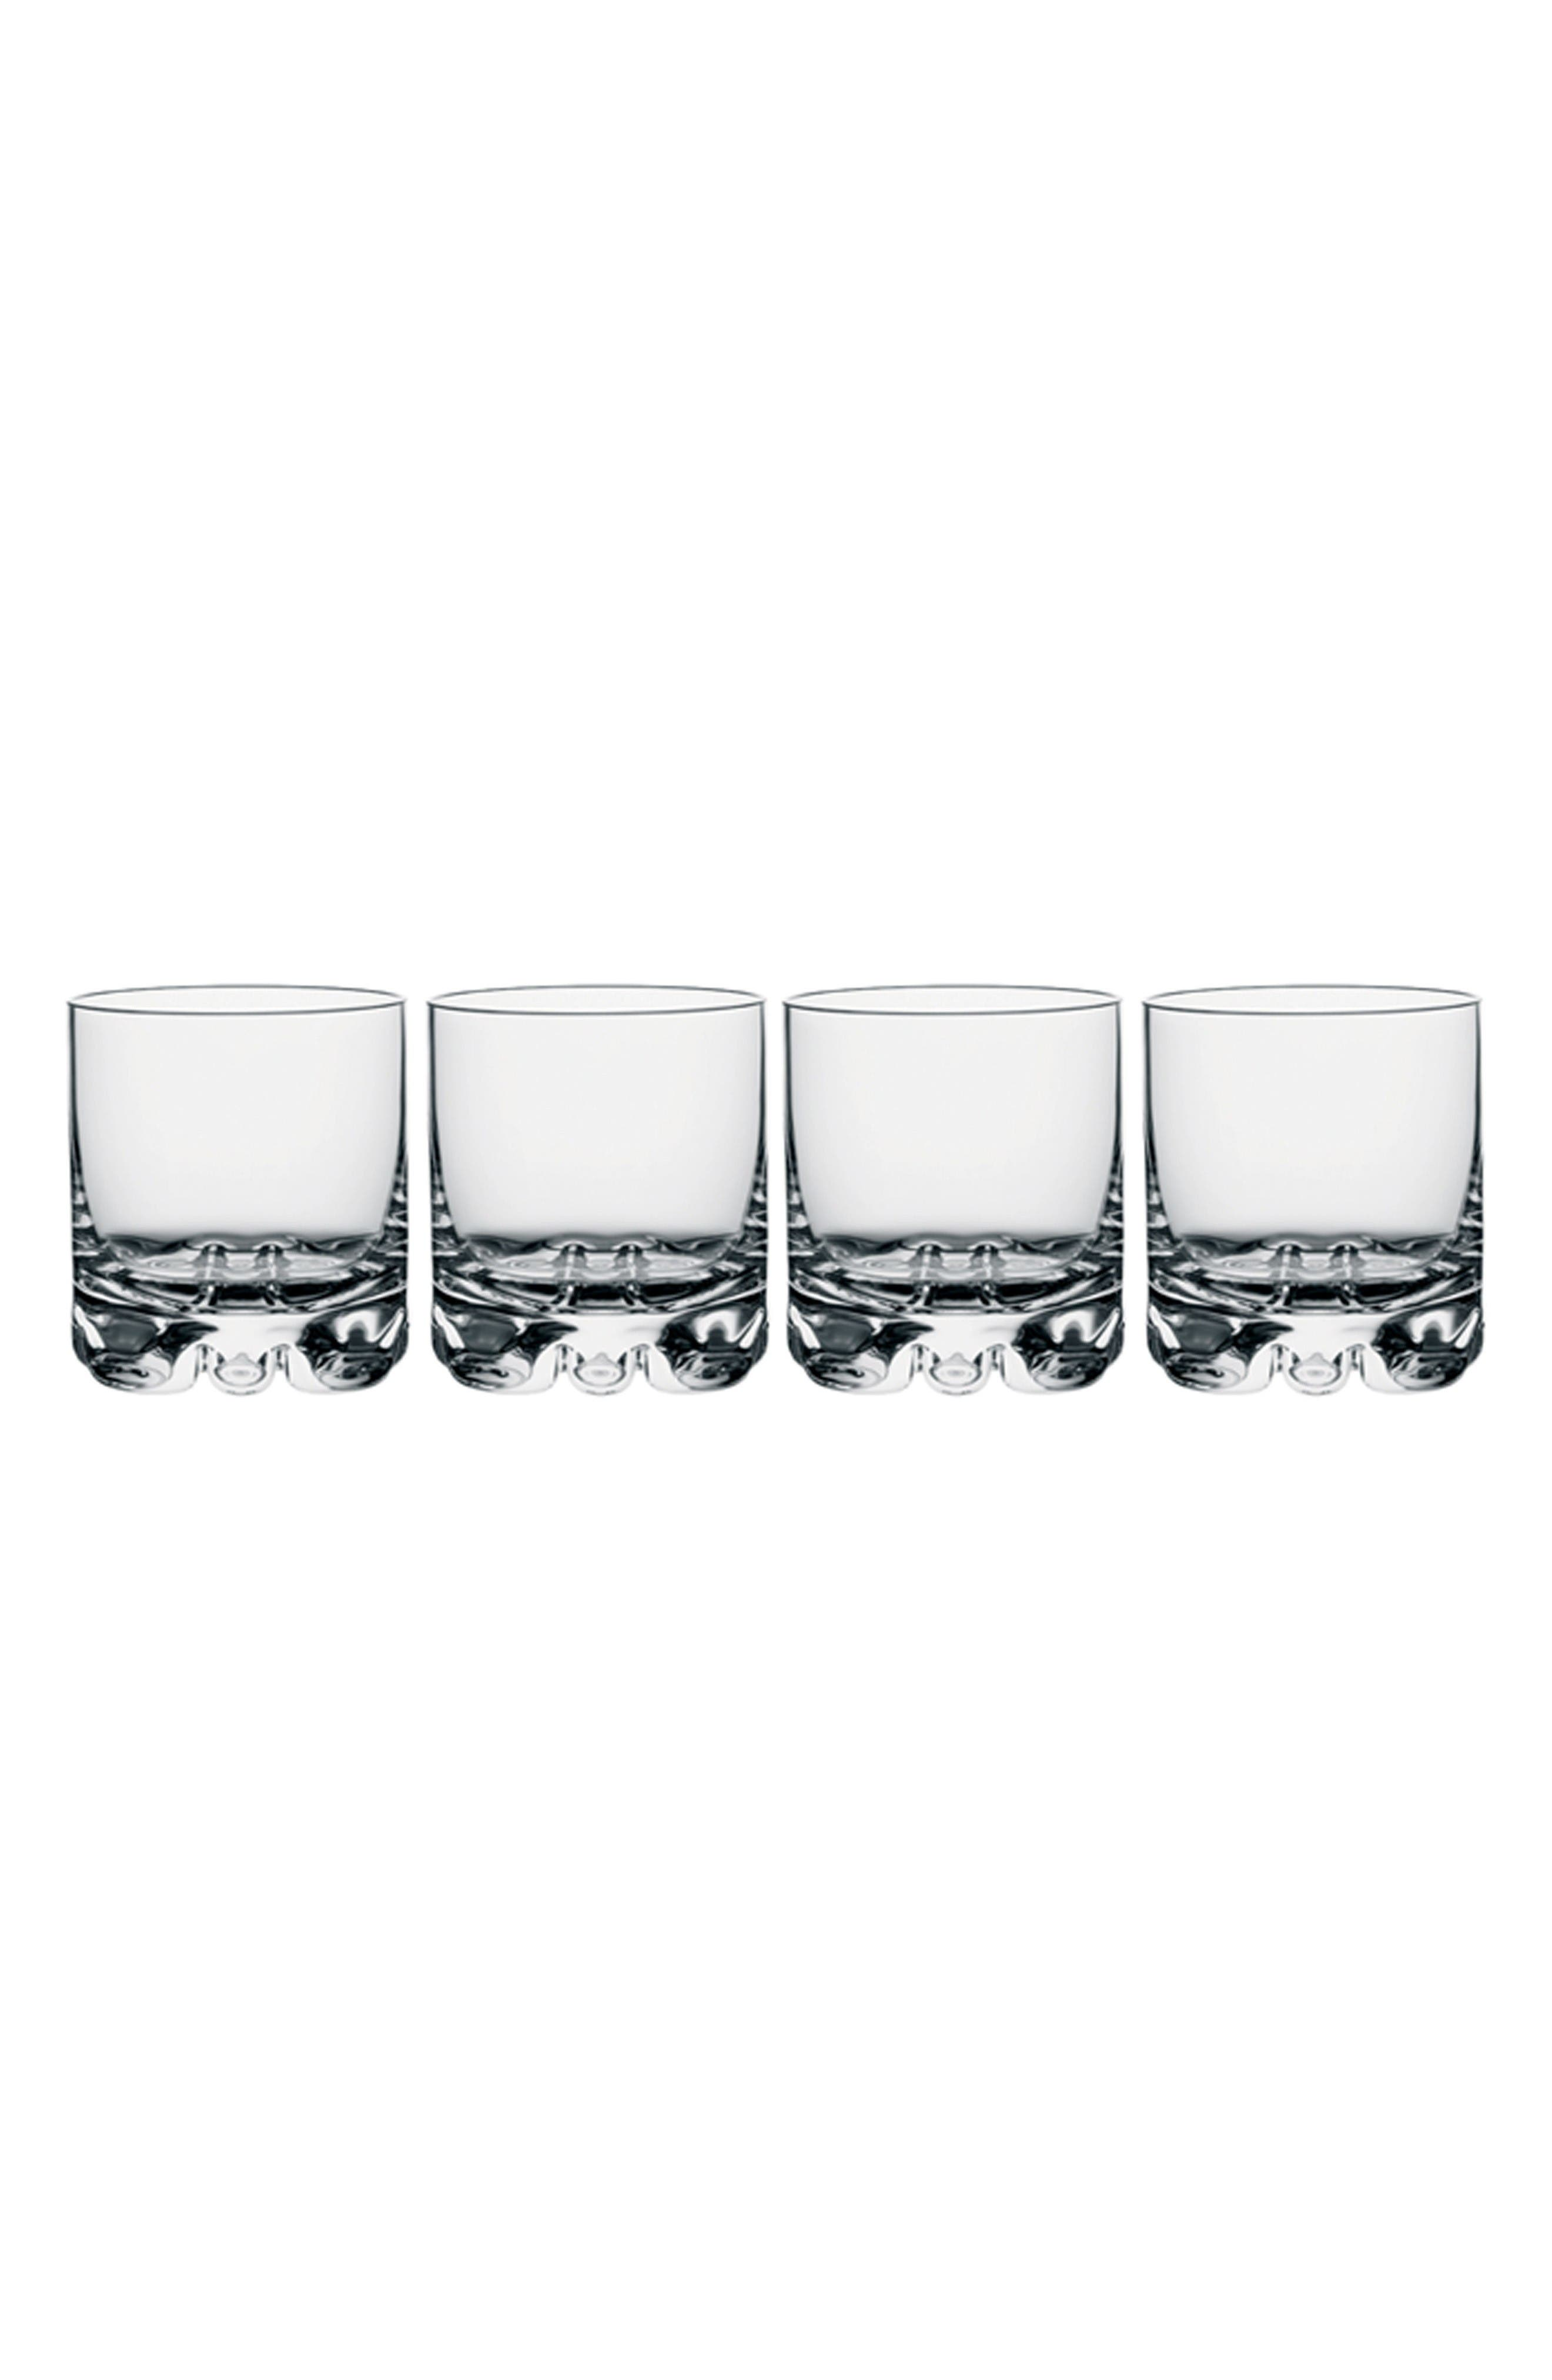 Erik Set of 4 Double Old Fashioned Glasses,                         Main,                         color, Clear